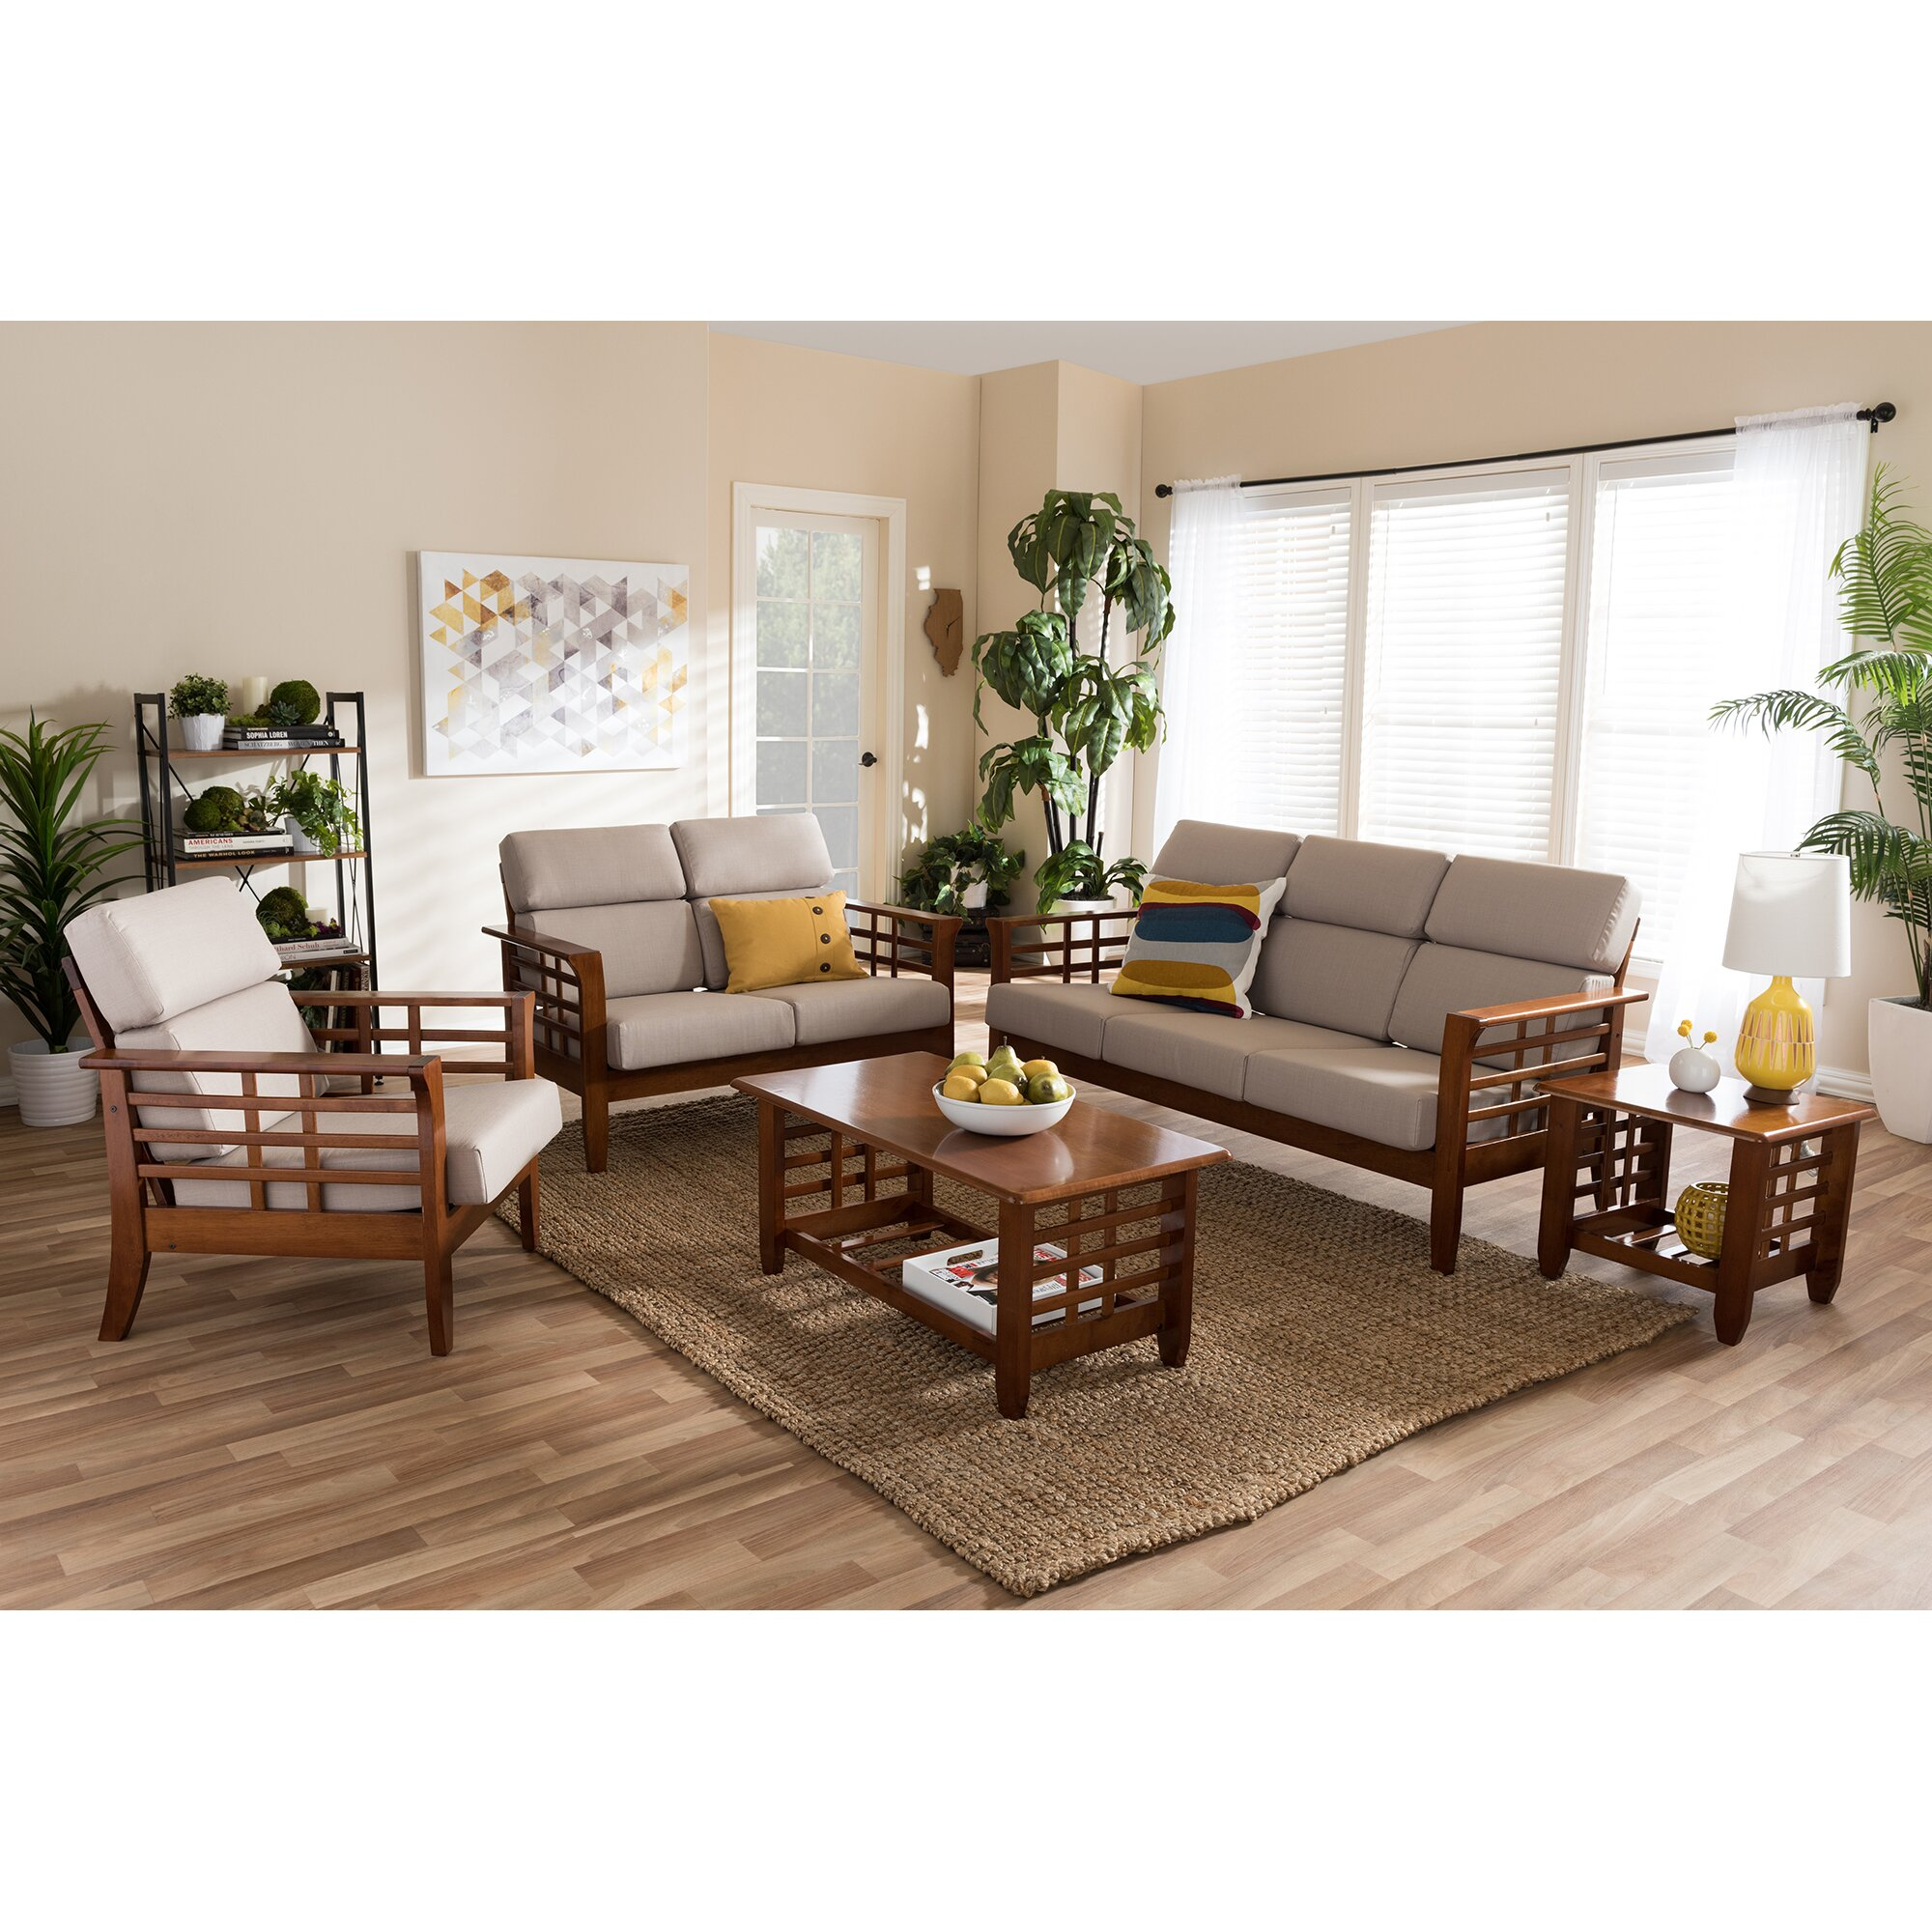 Latitude run aguon 5 piece living room set reviews wayfair for 5 piece living room furniture